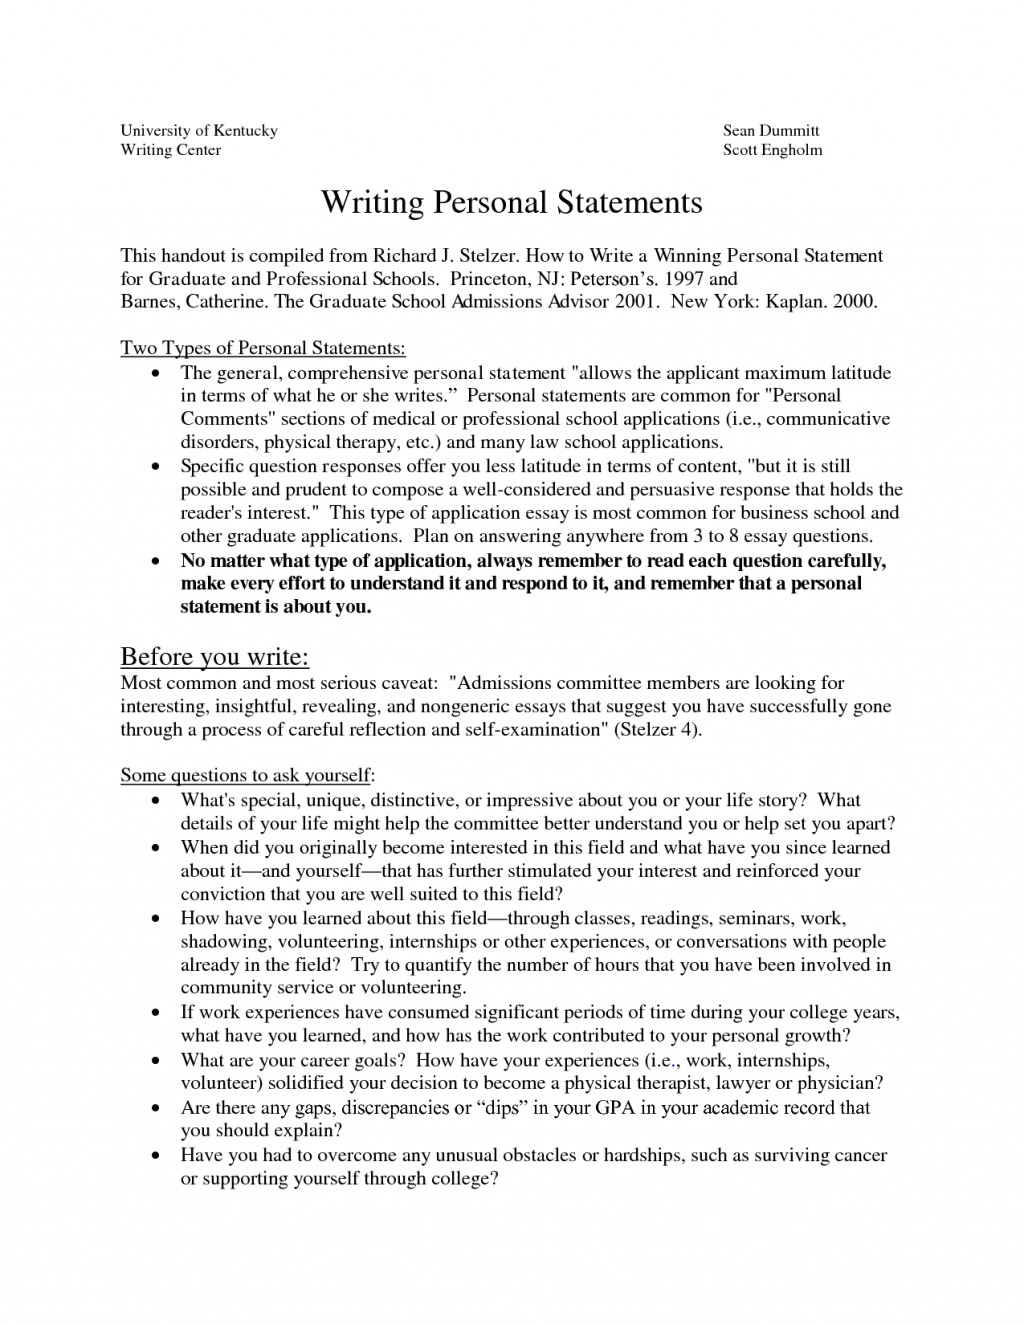 017 Essay Example How To Write Graduate School Images About Social Work Grad Personal Statement Rare Large